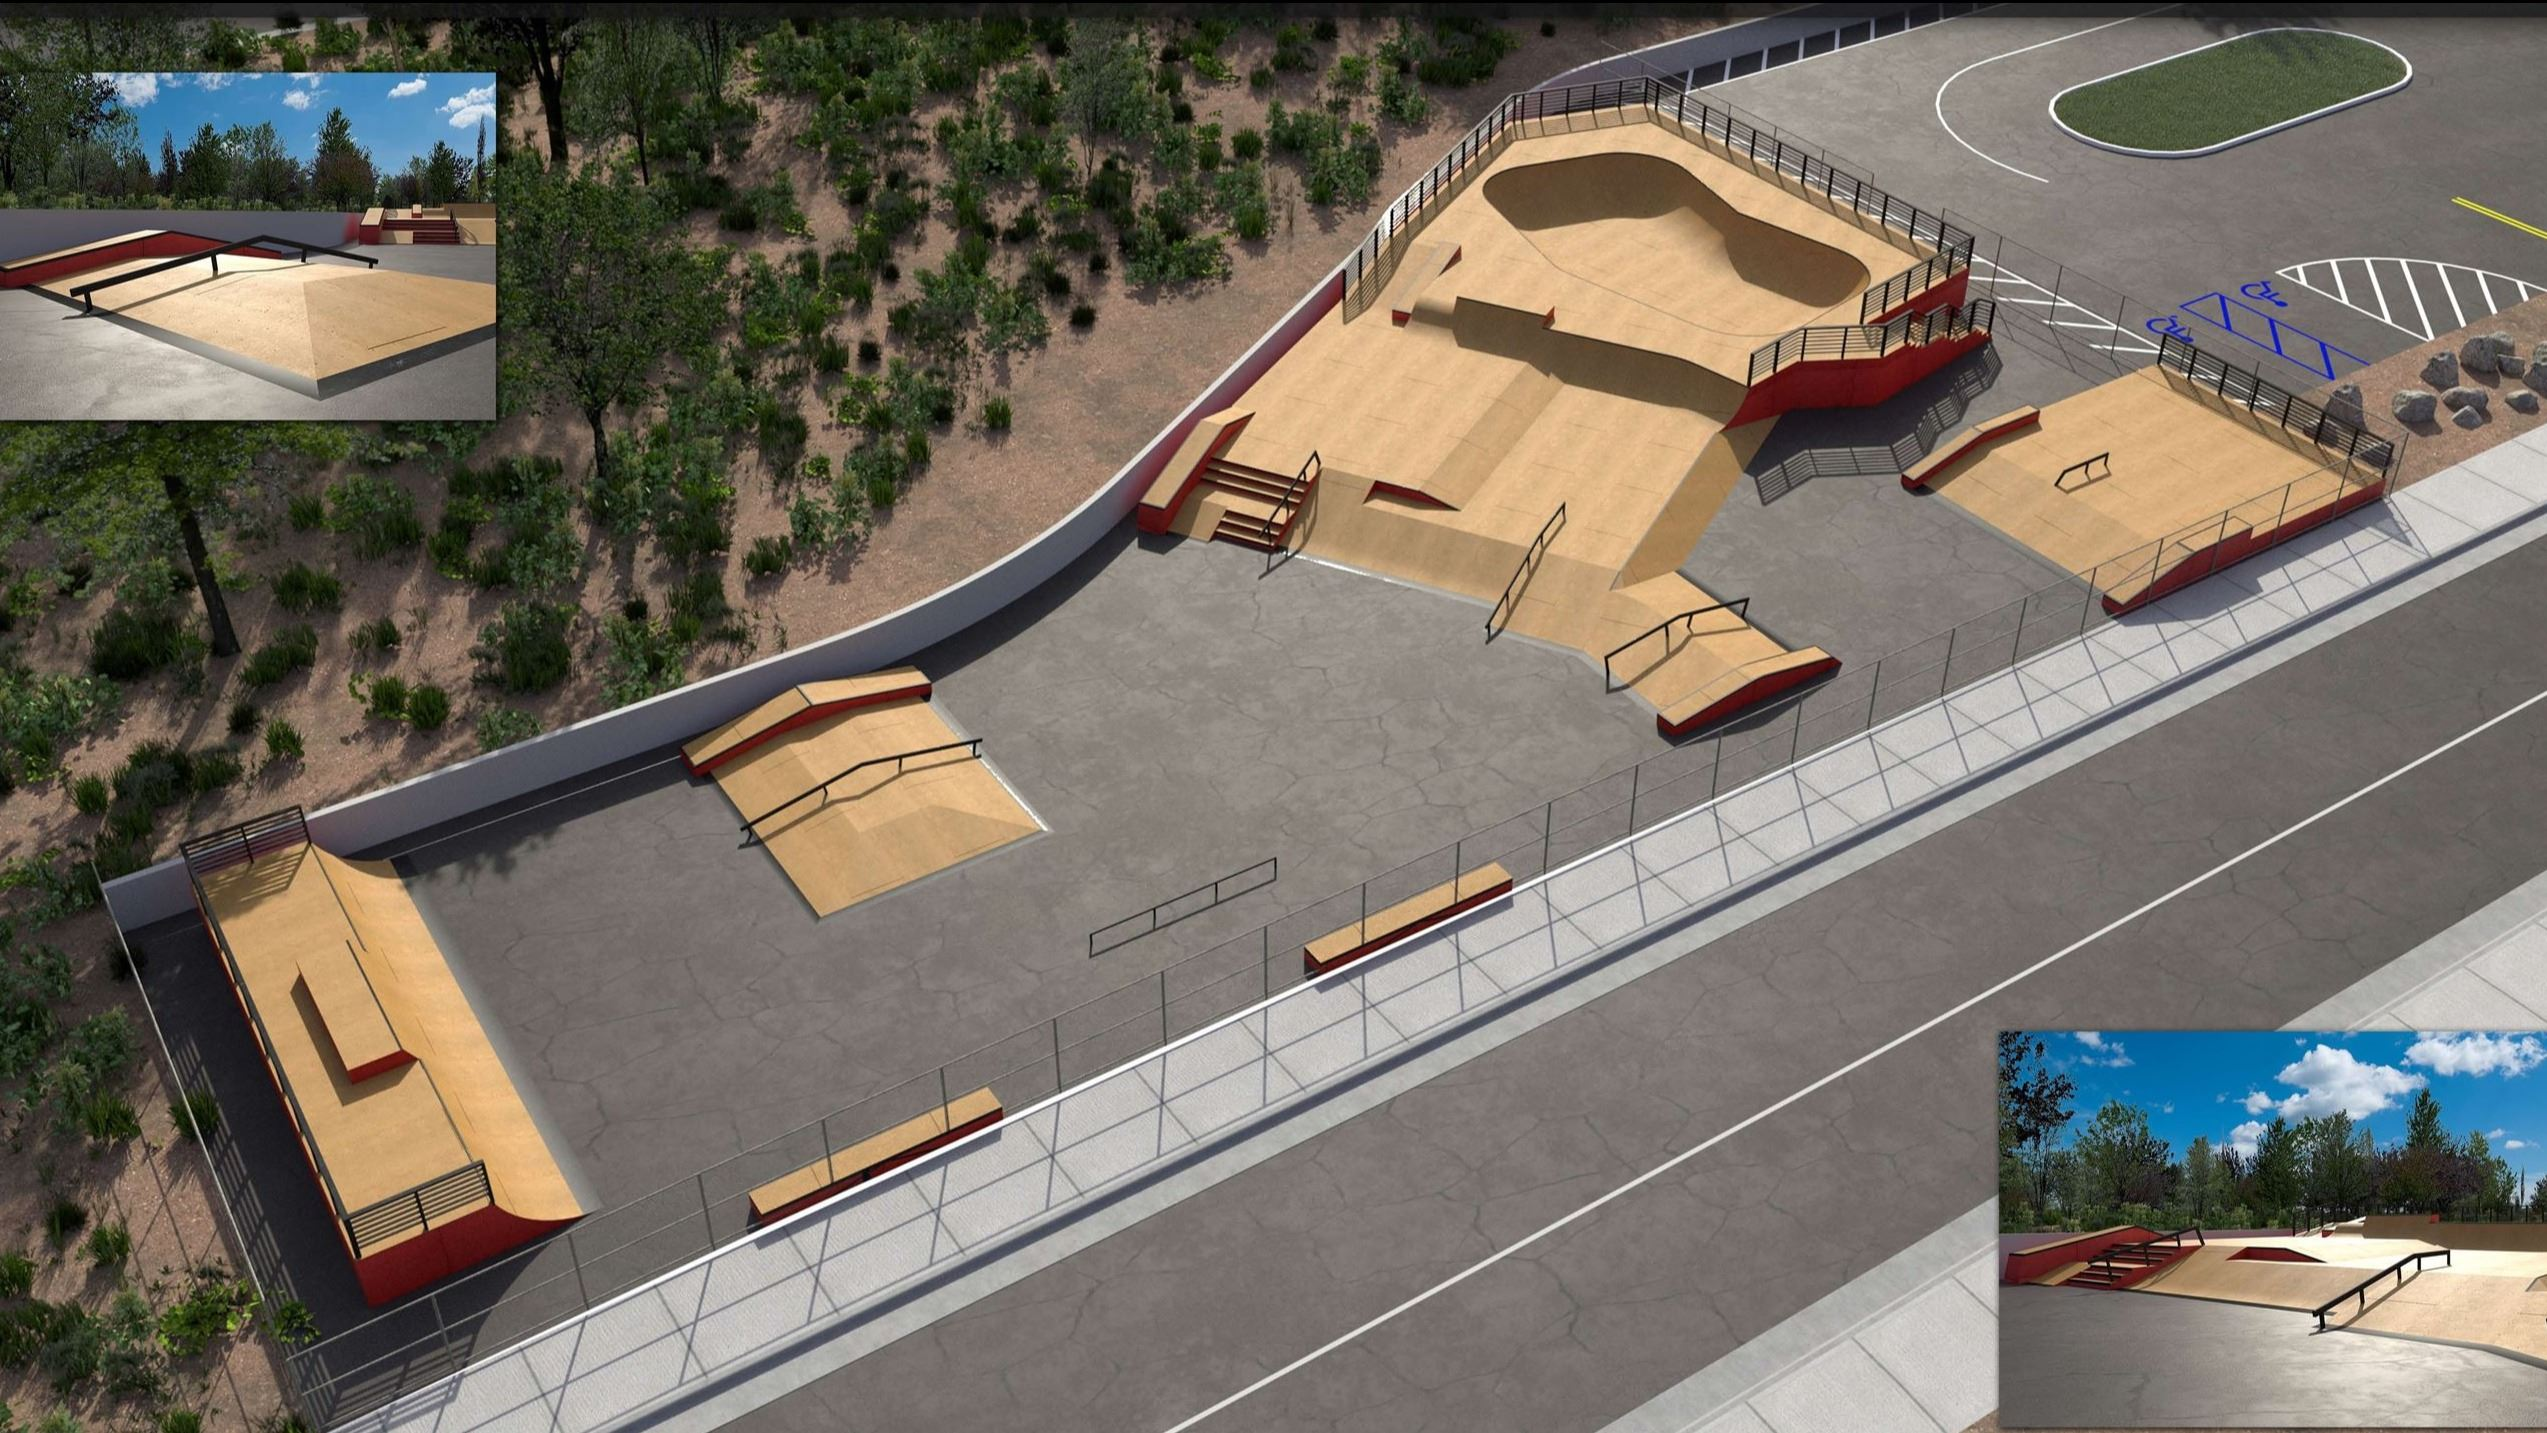 Temporary Skate Park Concept and Design